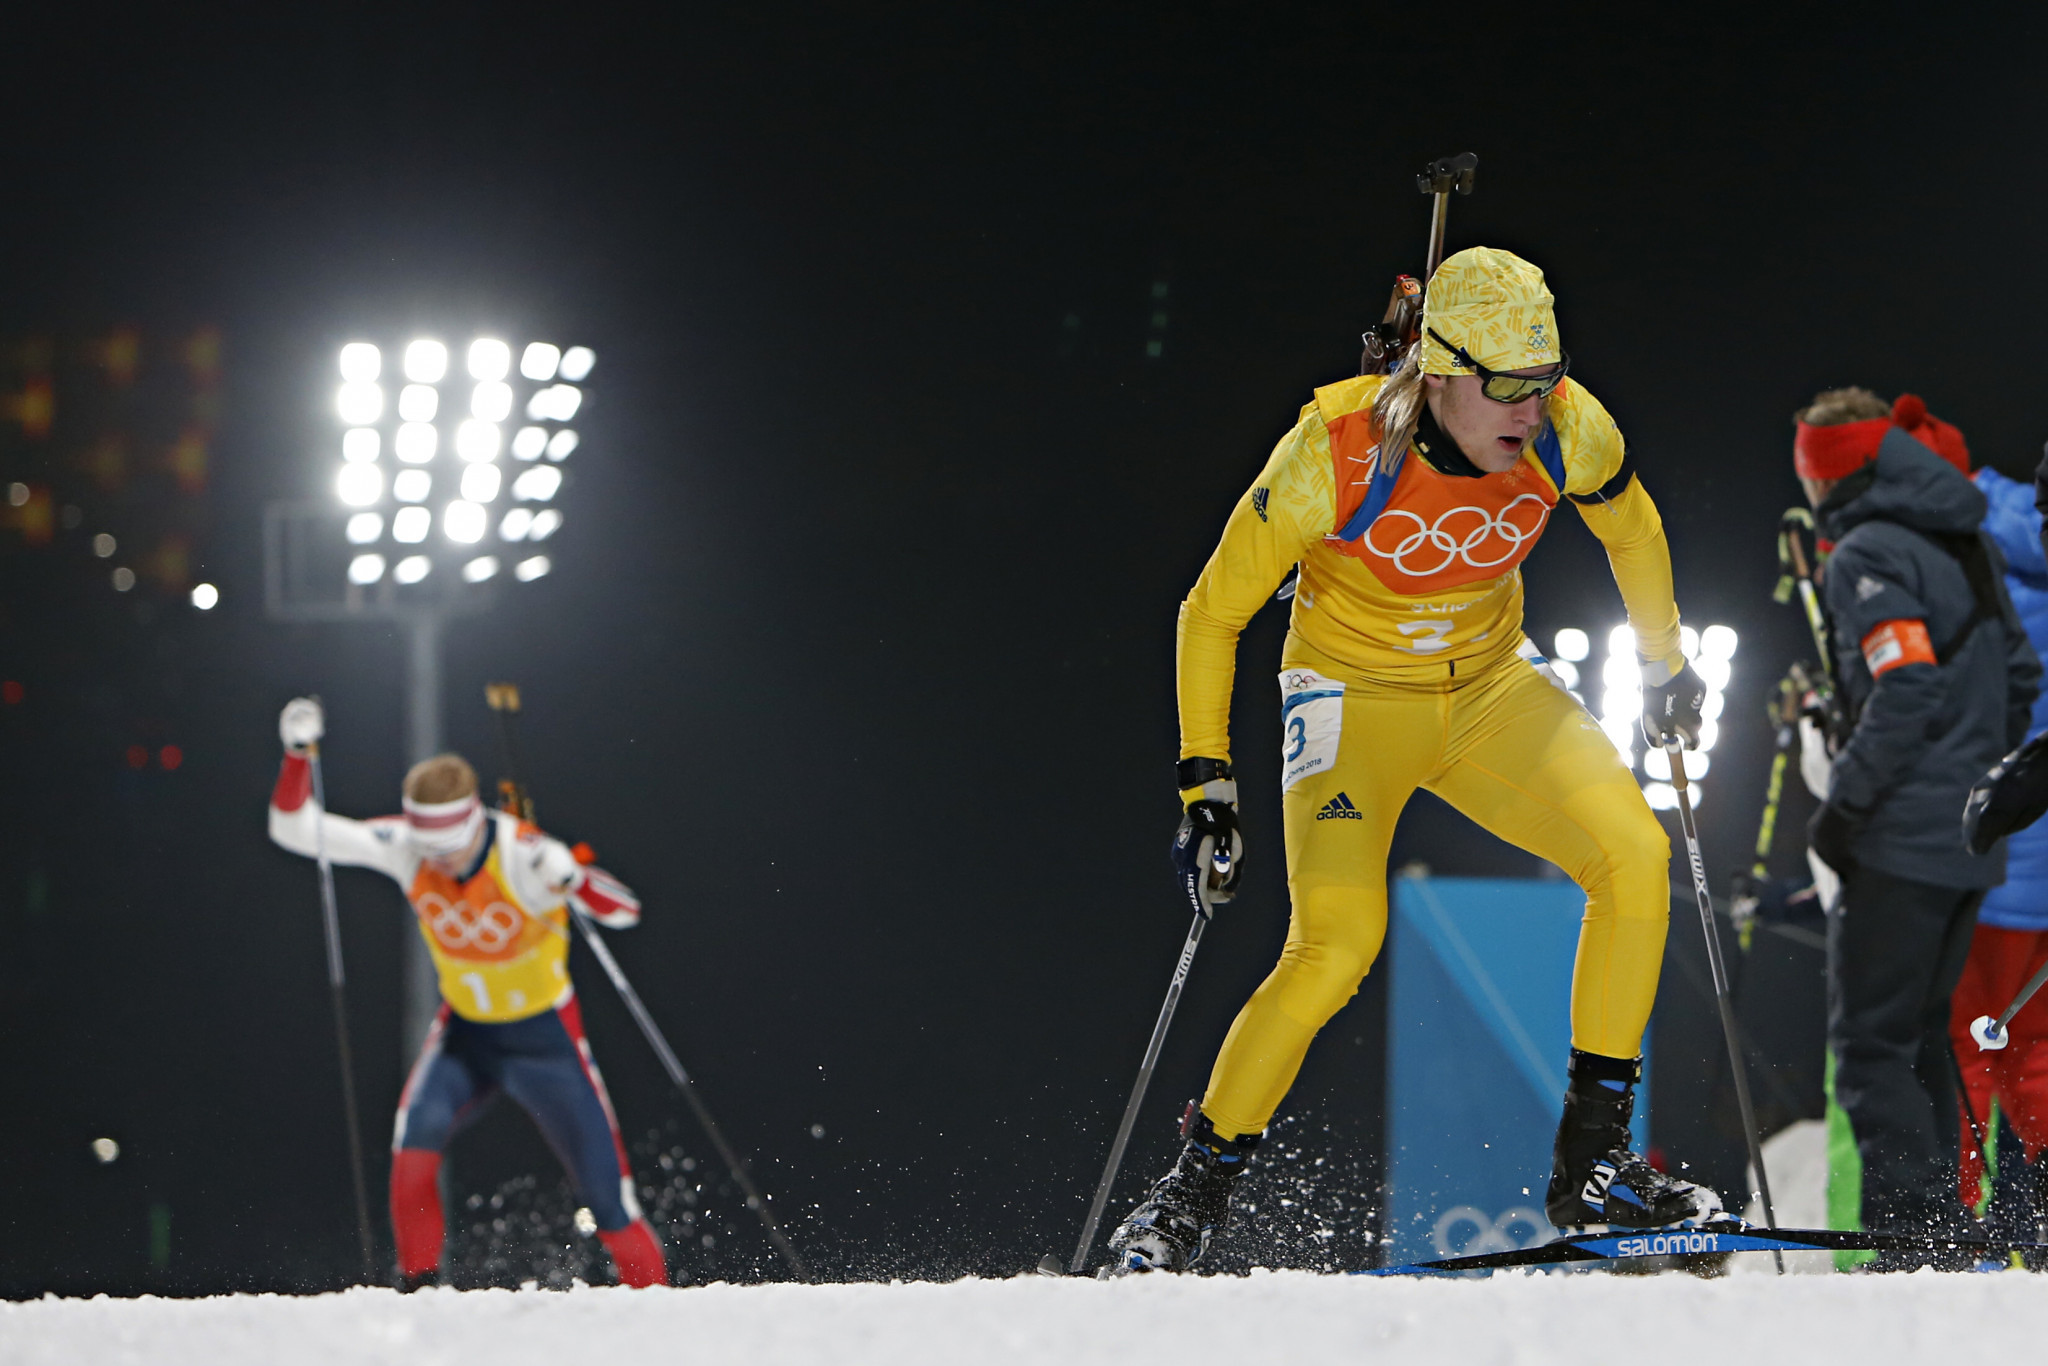 Sweden's Sebastian Samuelsson, winner of the silver medal in the men's 12.5km pursuit at Pyeongchang 2018, admitted he was